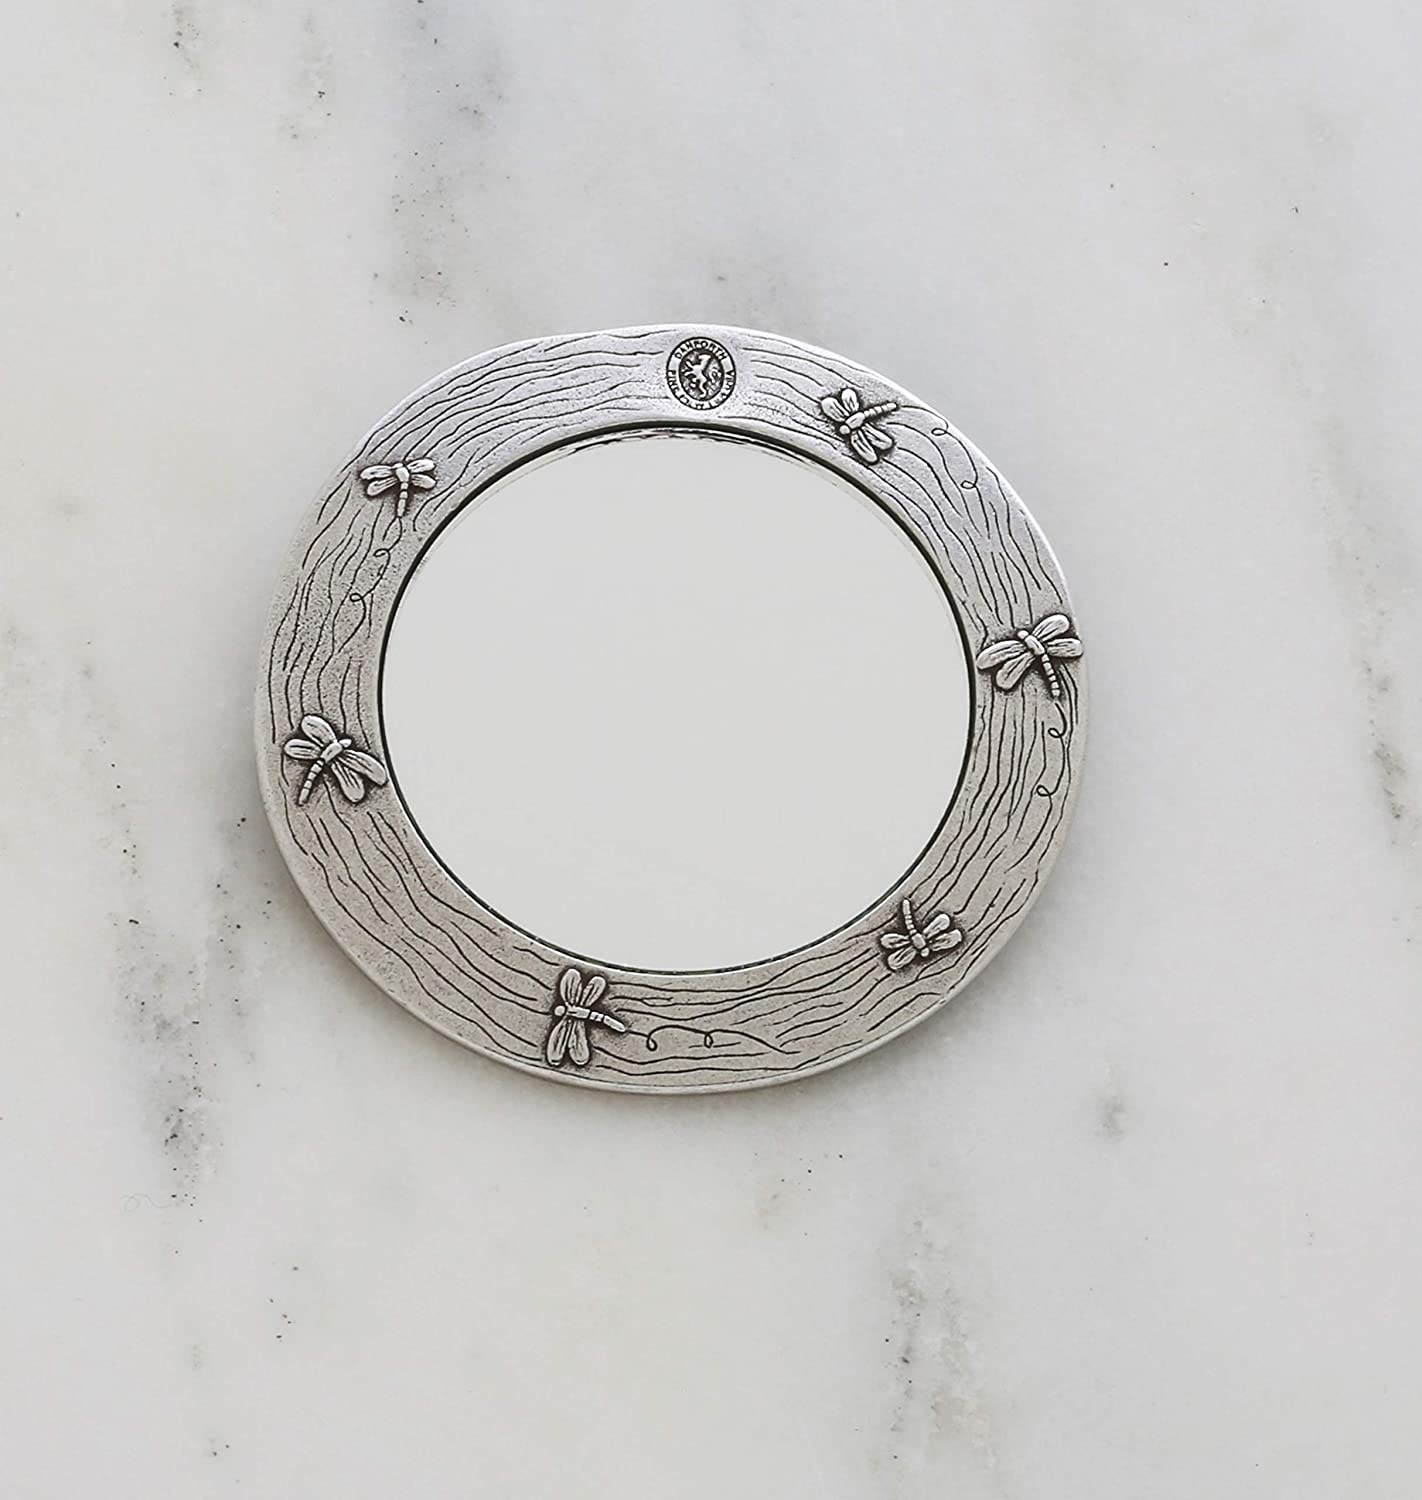 Teal Handcrafted USA Danforth Pewter - 2 7//8 Inch Diameter Gift Boxed Danforth Dragonfly Purse Mirror